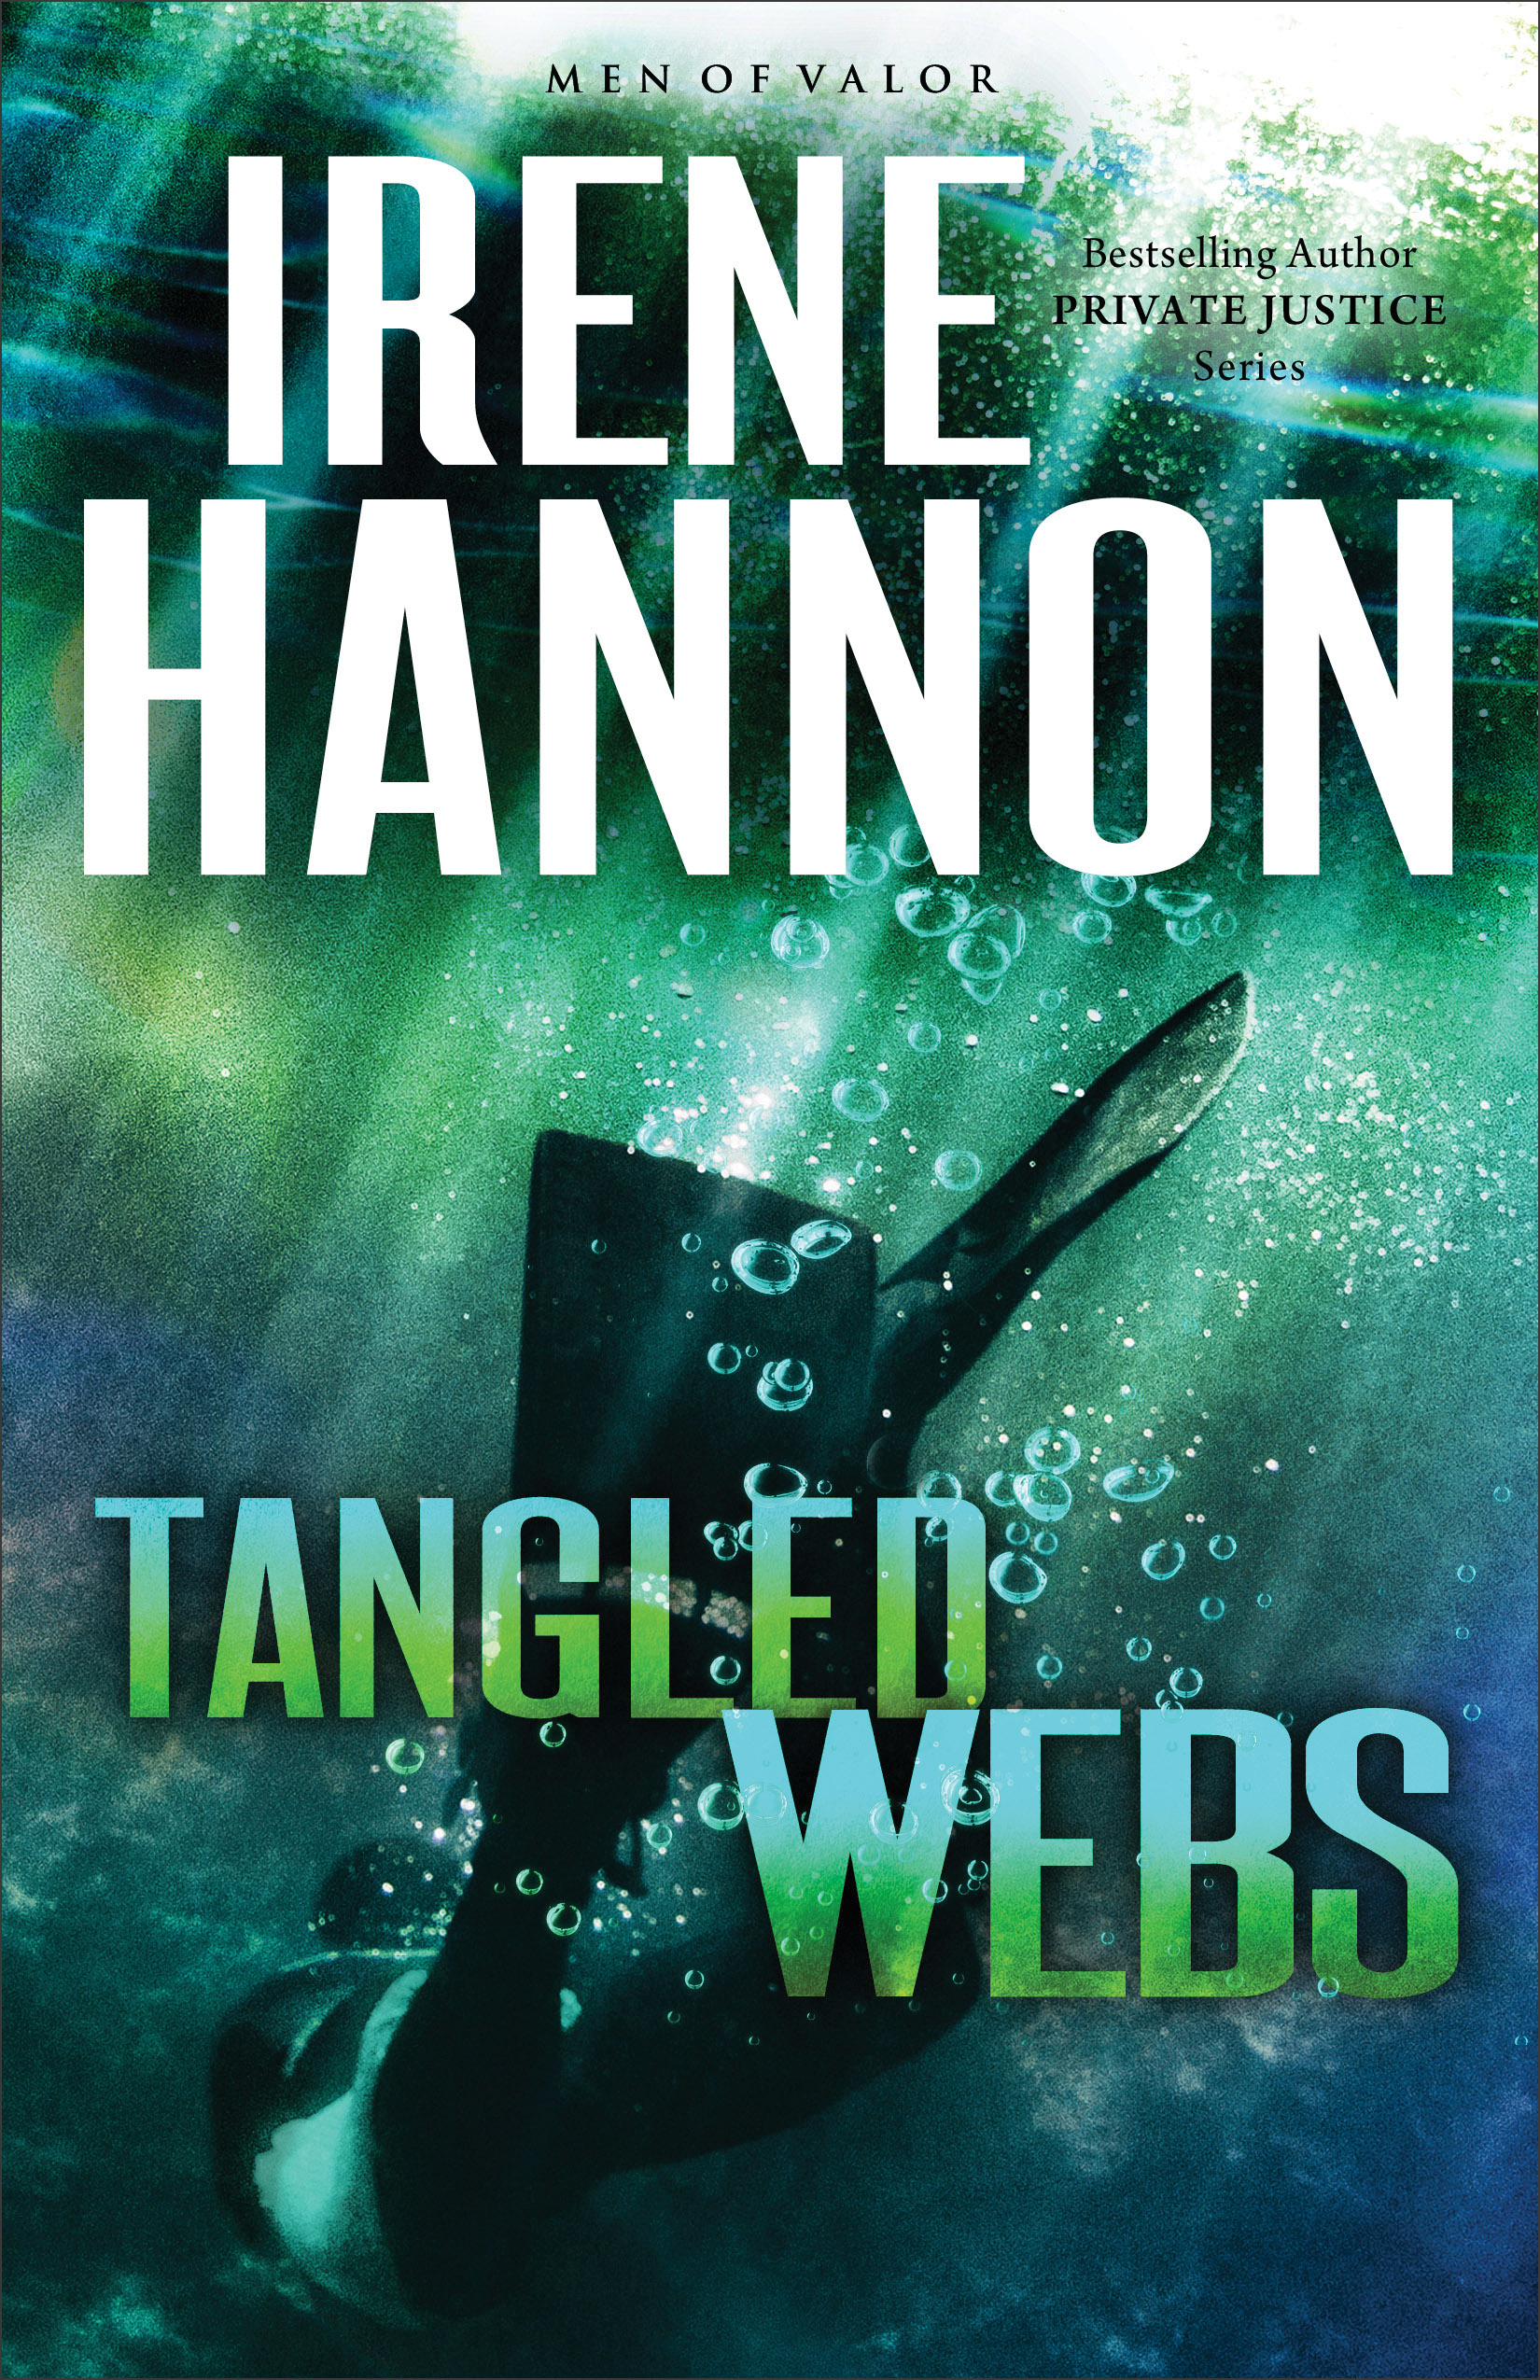 Book review of Tangled Webs by Irene Hannon (Revell) by papertapepins